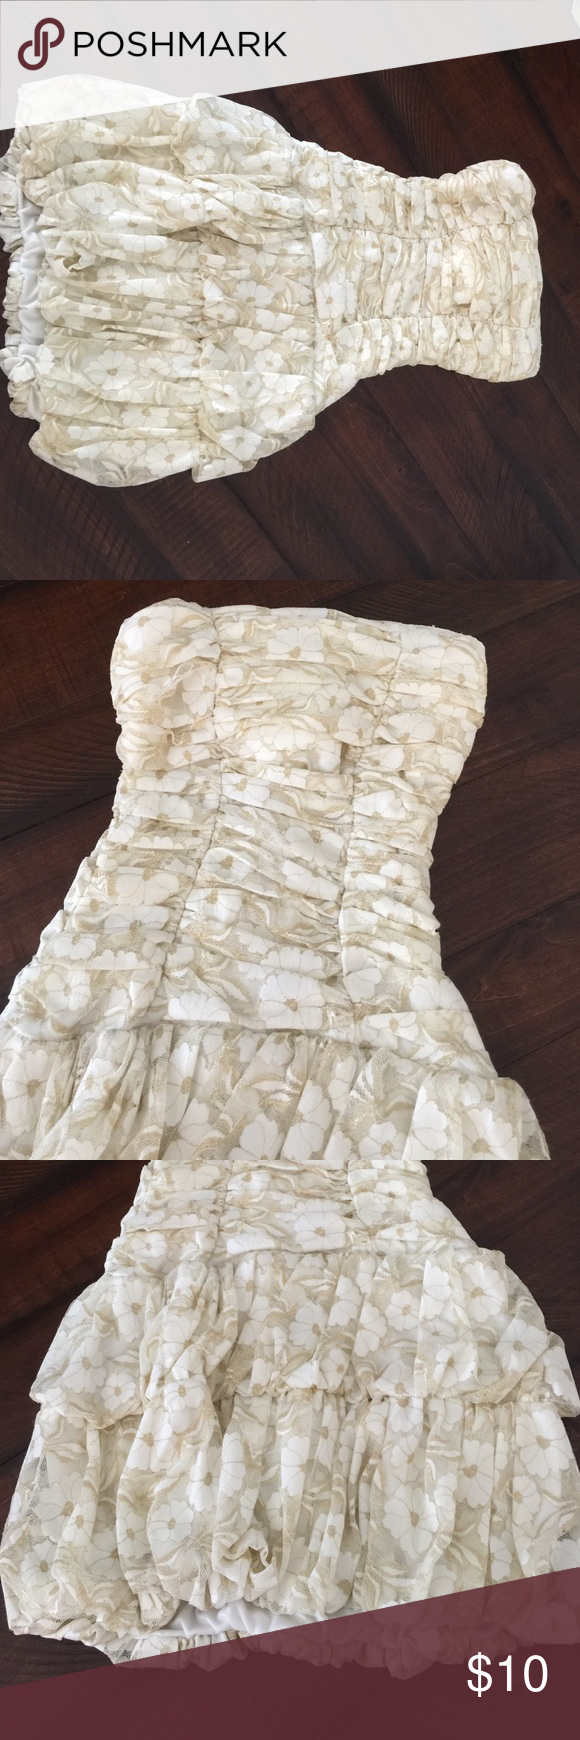 Good condition gold & cream floral lace dress Good condition white & cream floral stretchy lace ruched mini strapless dress Dresses Mini